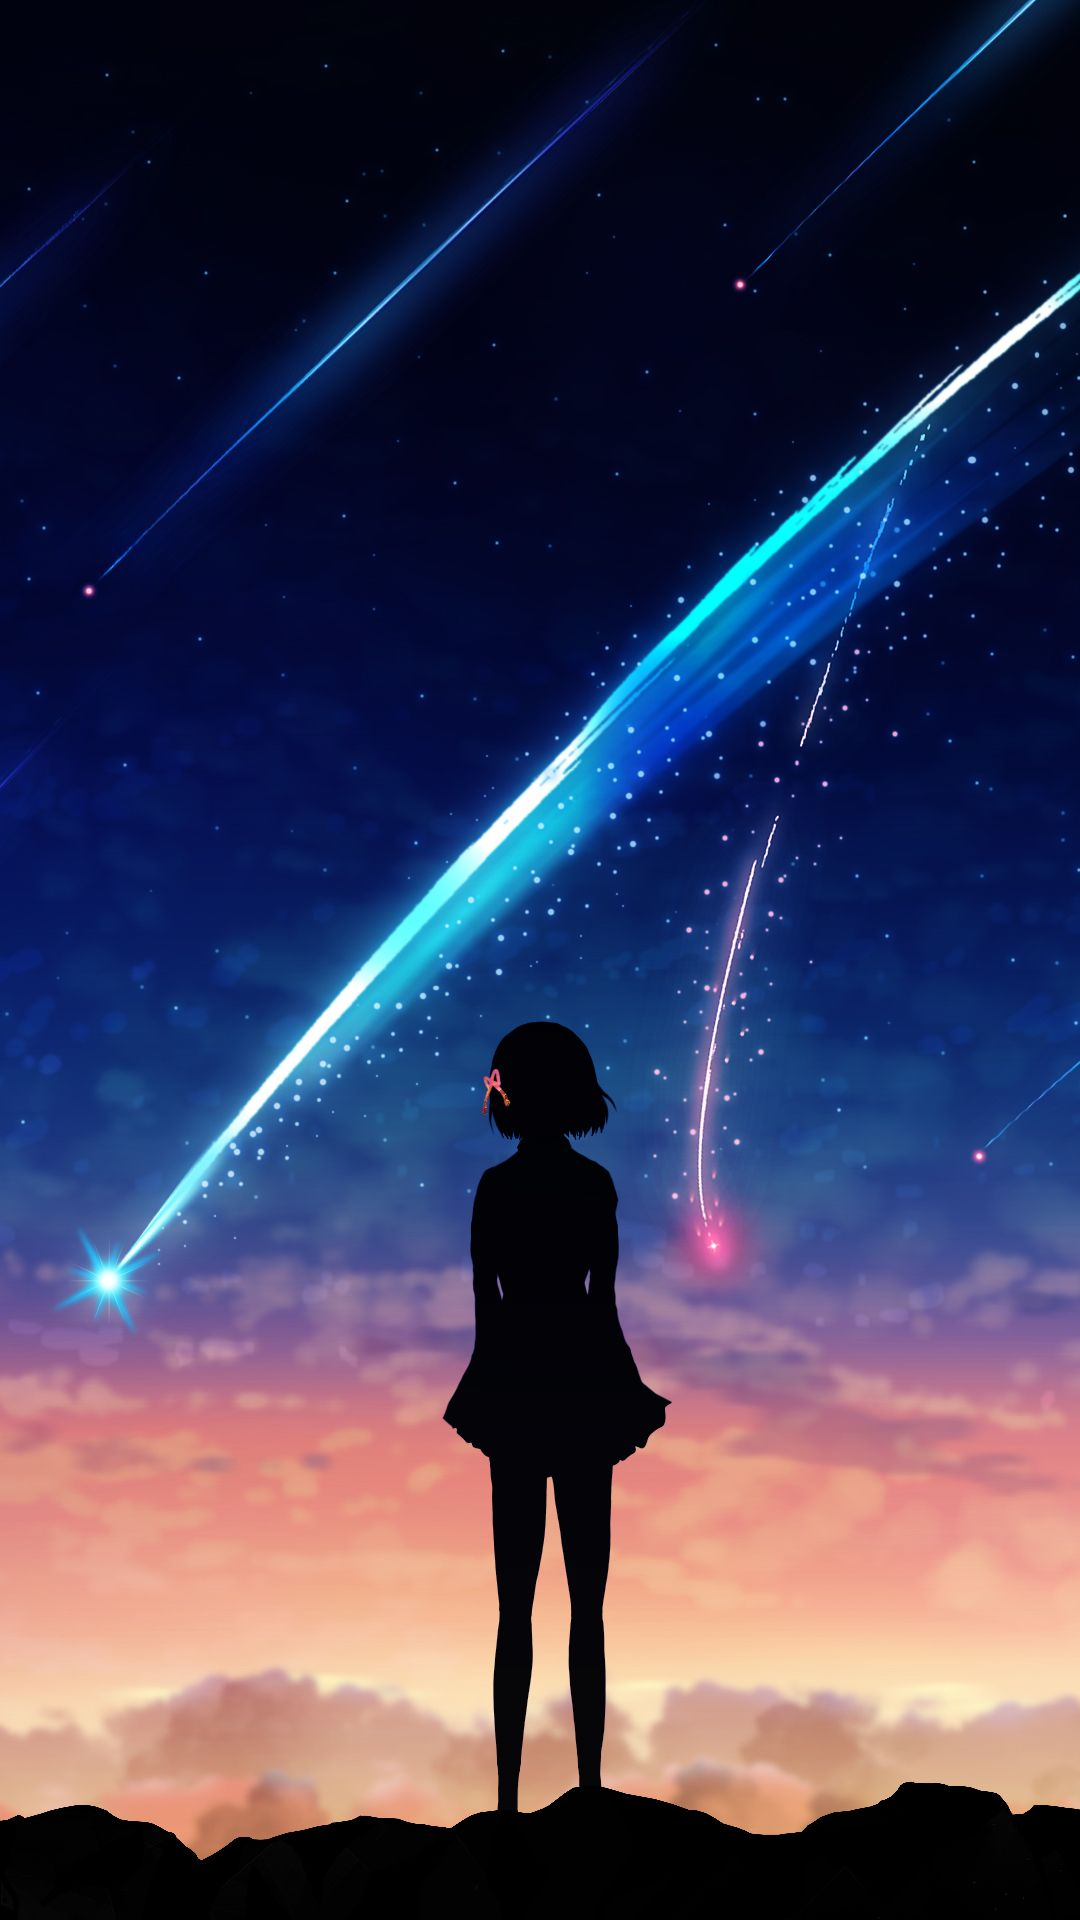 Free Download Your Name Anime Wallpapers Top Your Name Anime Backgrounds 1080x1920 For Your Desktop Mobile Tablet Explore 46 Anime 4k Your Name Wallpapers Anime 4k Your Name Wallpapers